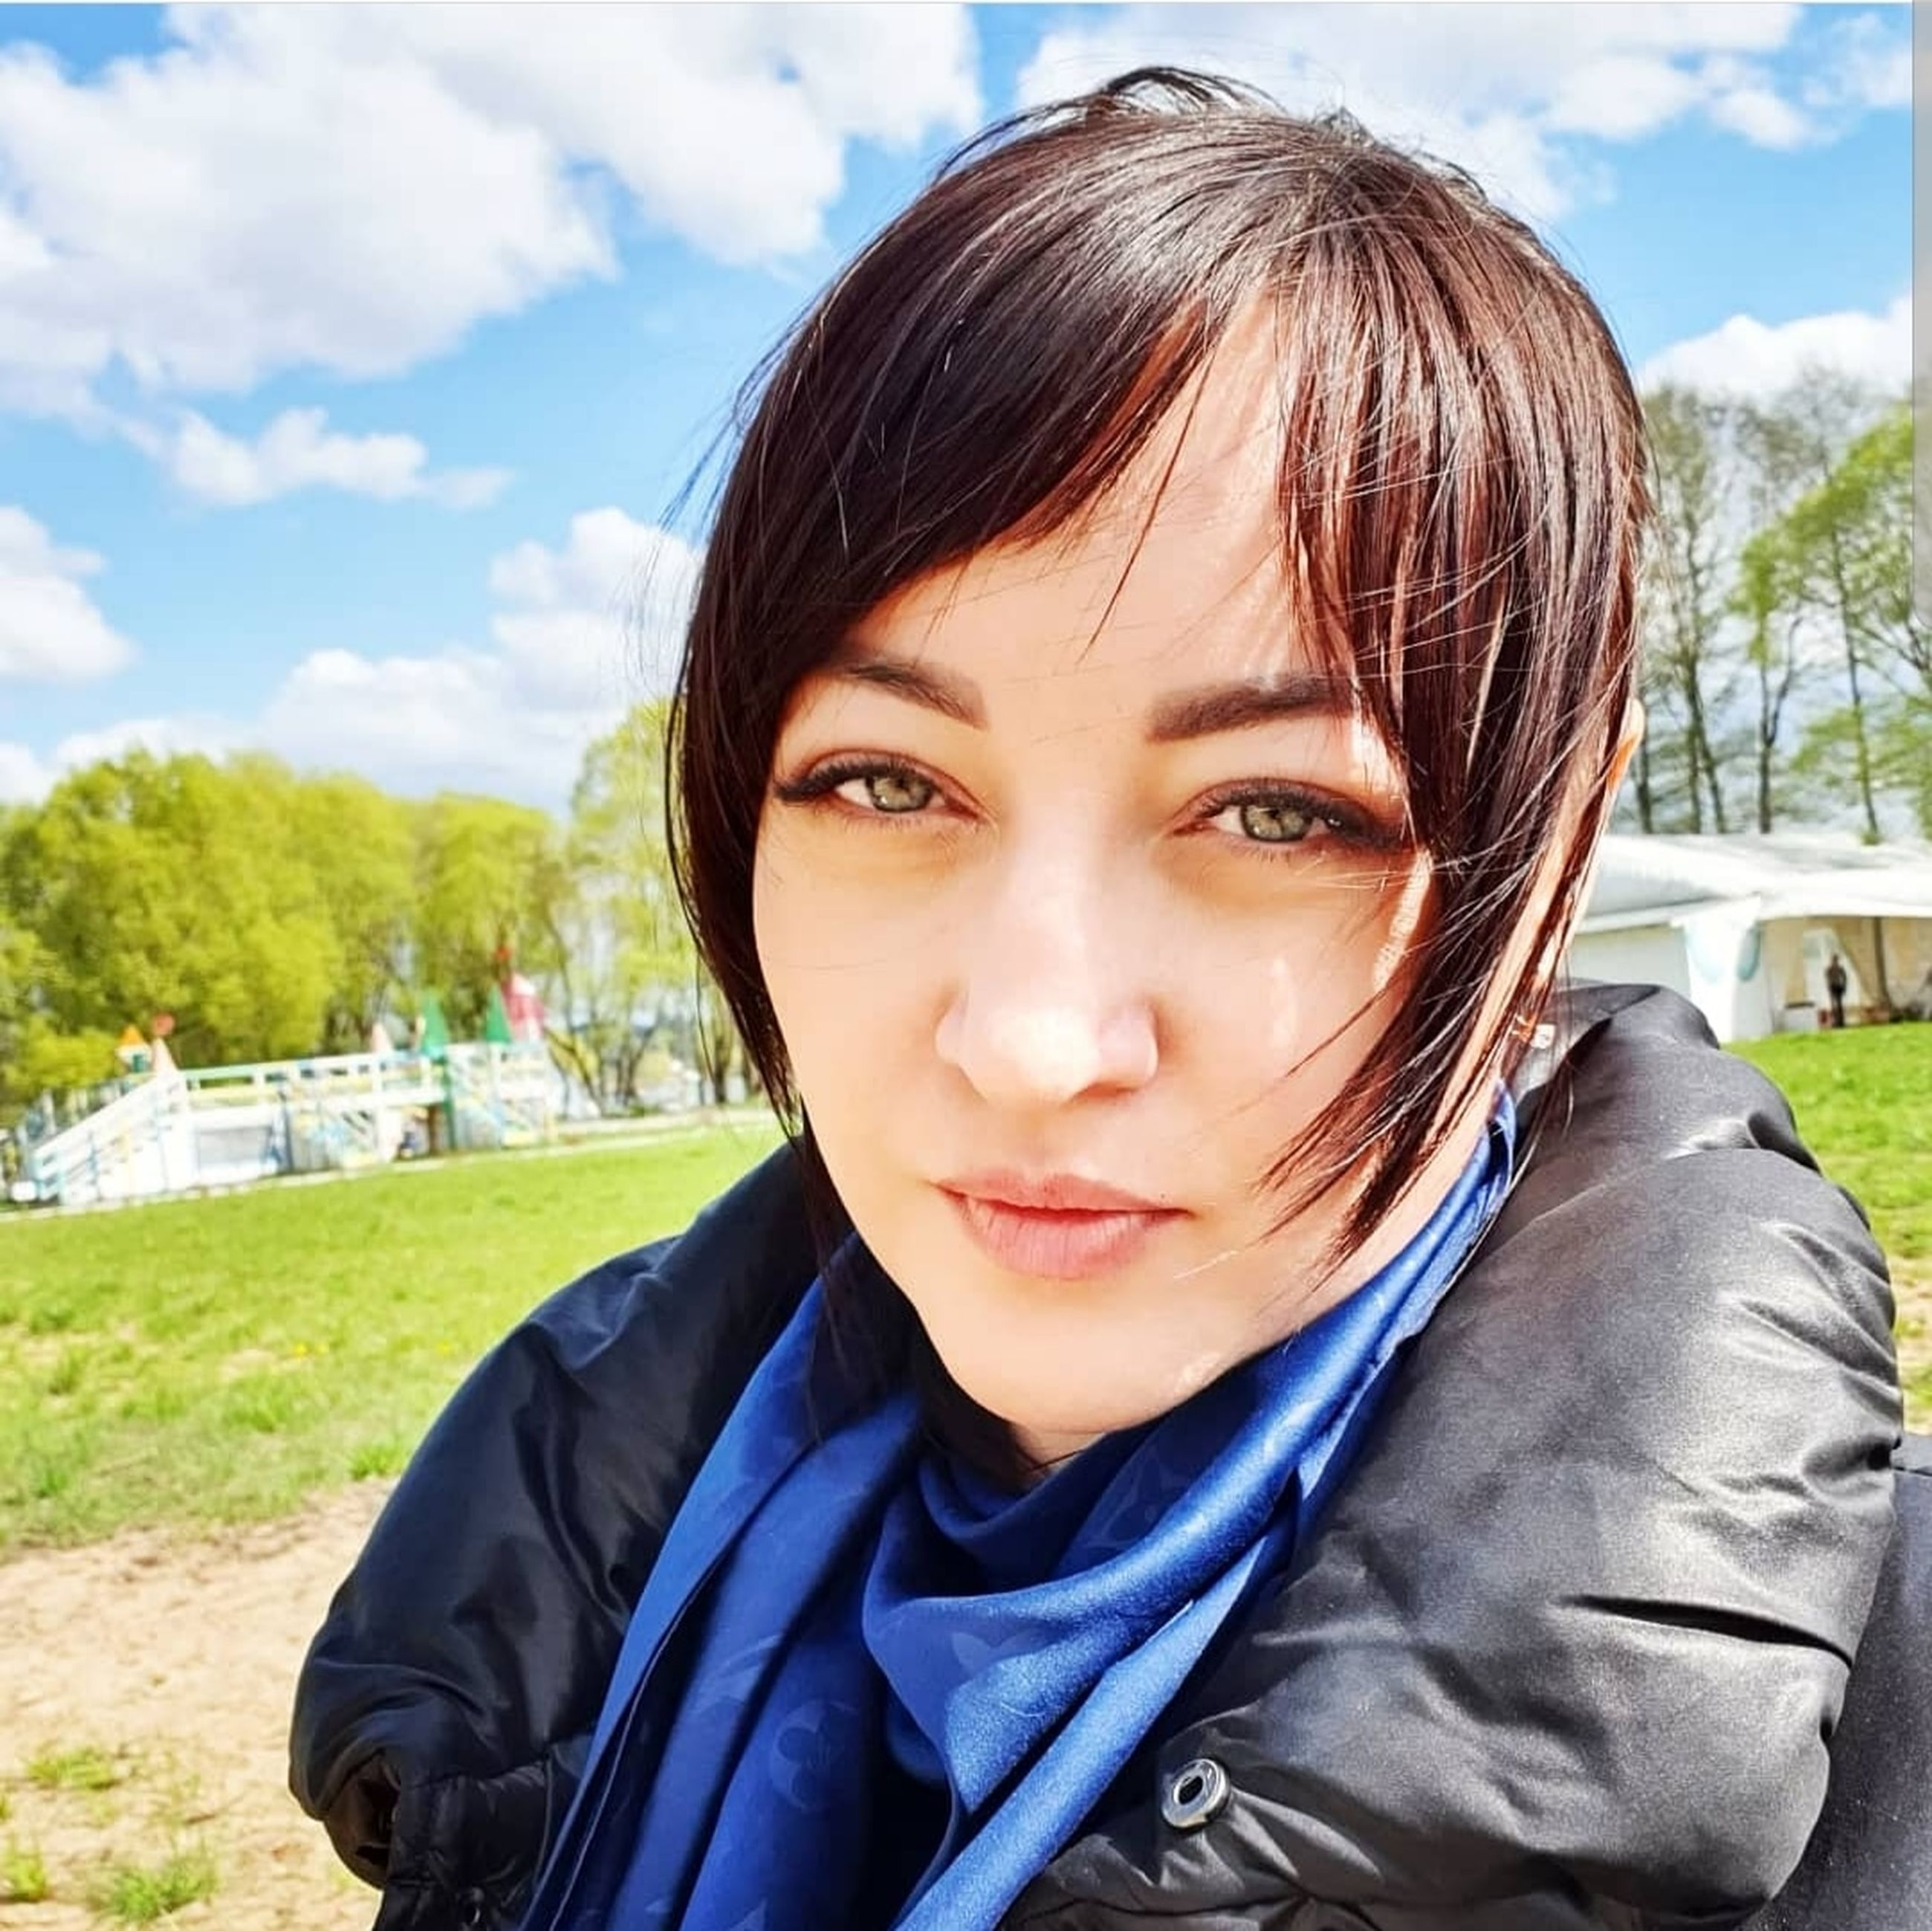 portrait, one person, looking at camera, real people, young adult, headshot, lifestyles, front view, nature, day, young women, close-up, sky, cloud - sky, leisure activity, women, sunlight, focus on foreground, outdoors, hairstyle, bangs, beautiful woman, contemplation